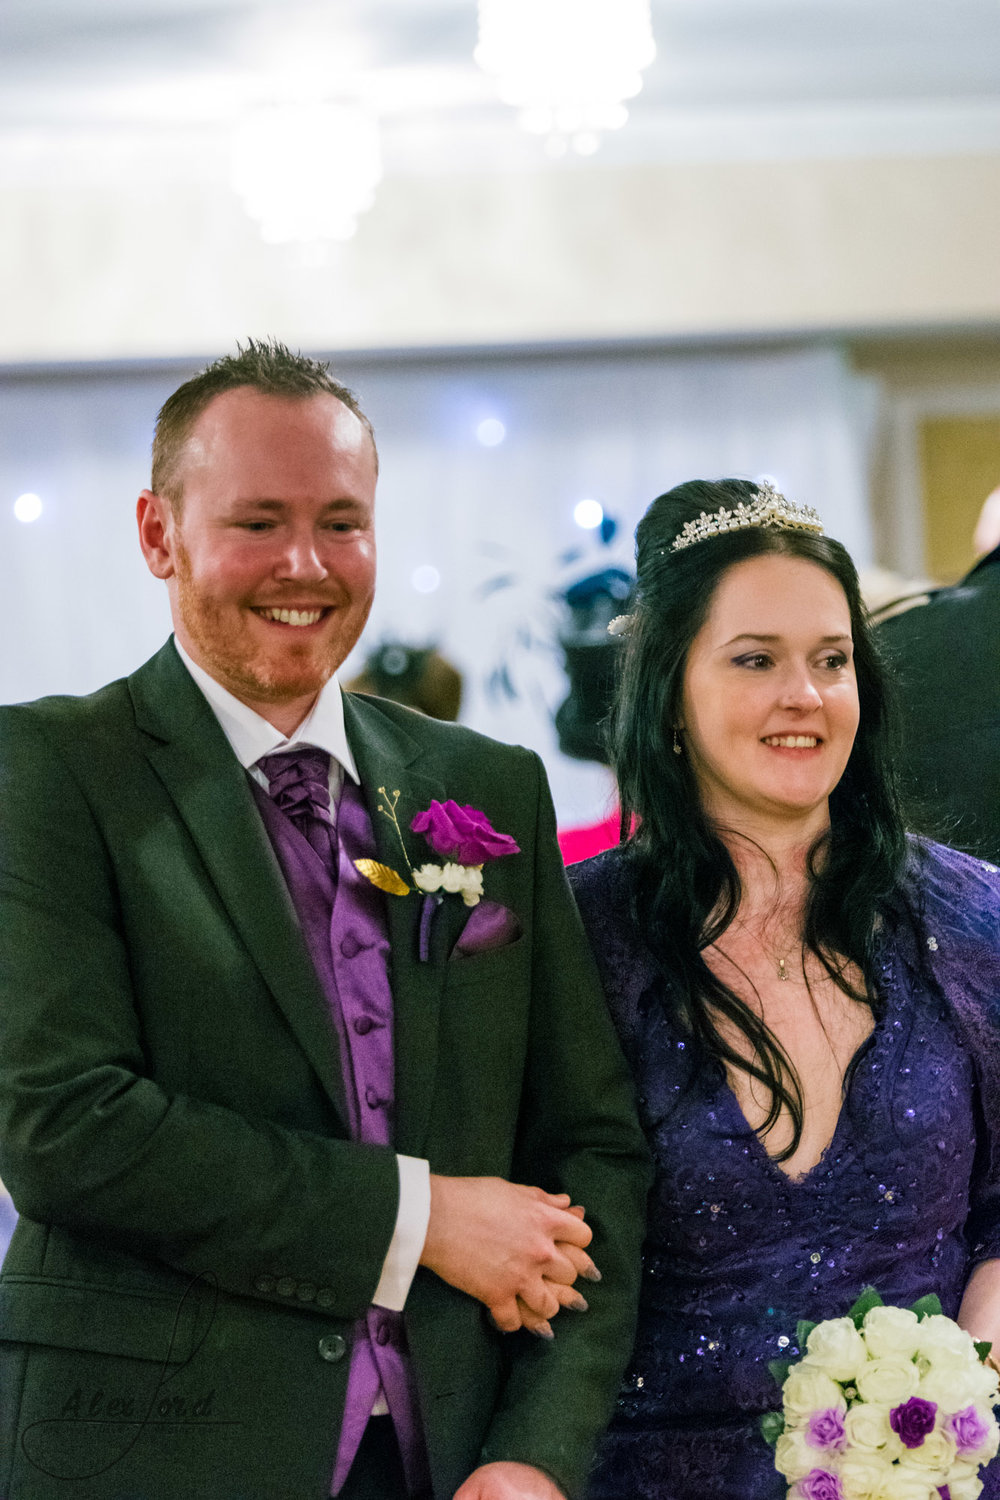 the happy bride and groom share a little moment together straight after their wedding ceremony